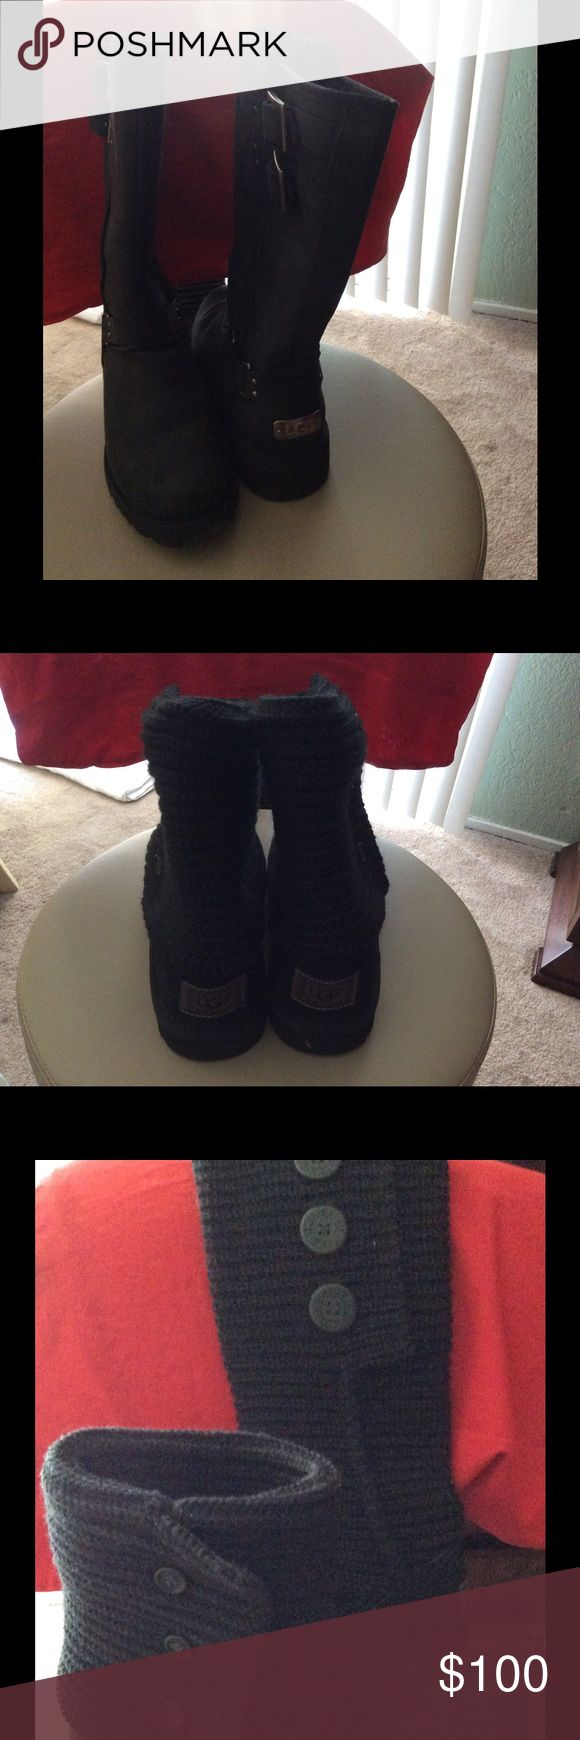 Original UGG boots I just bought this year worn twice. Still in good condition. UGG Shoes Winter & Rain Boots